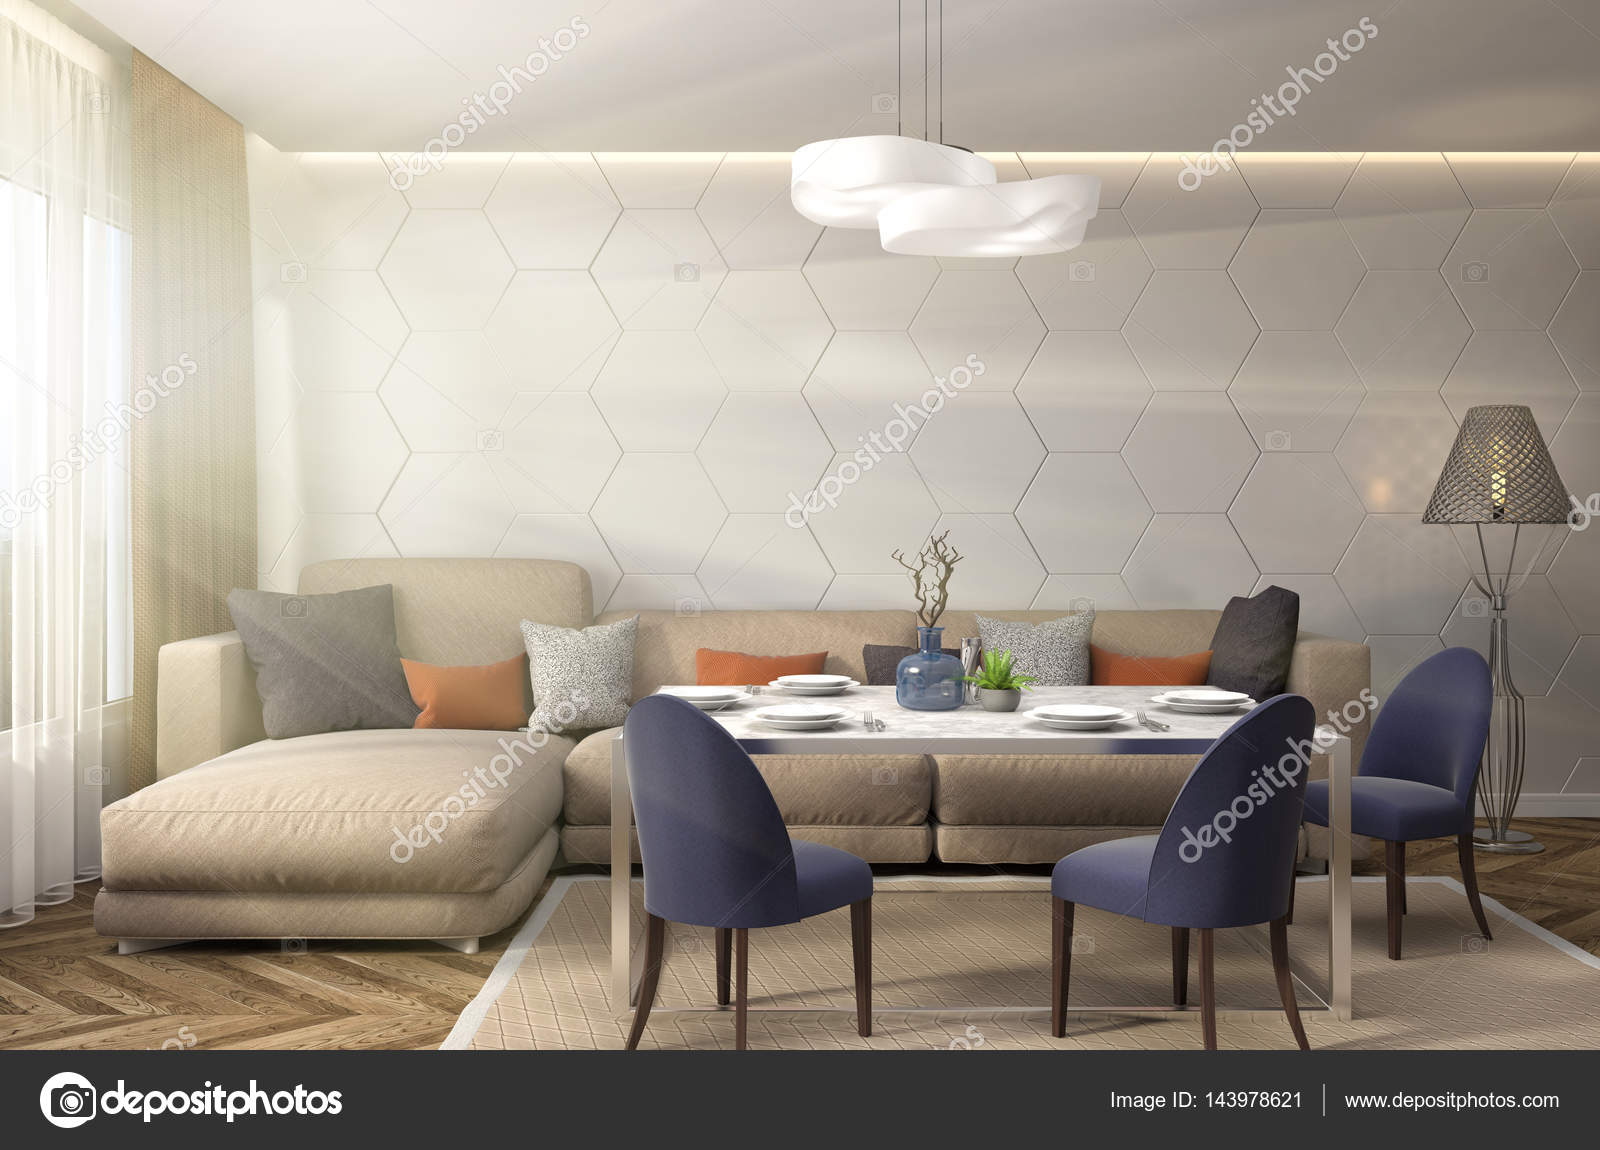 K che interieur 3d illustration stockfoto 143978621 for Interieur 3d